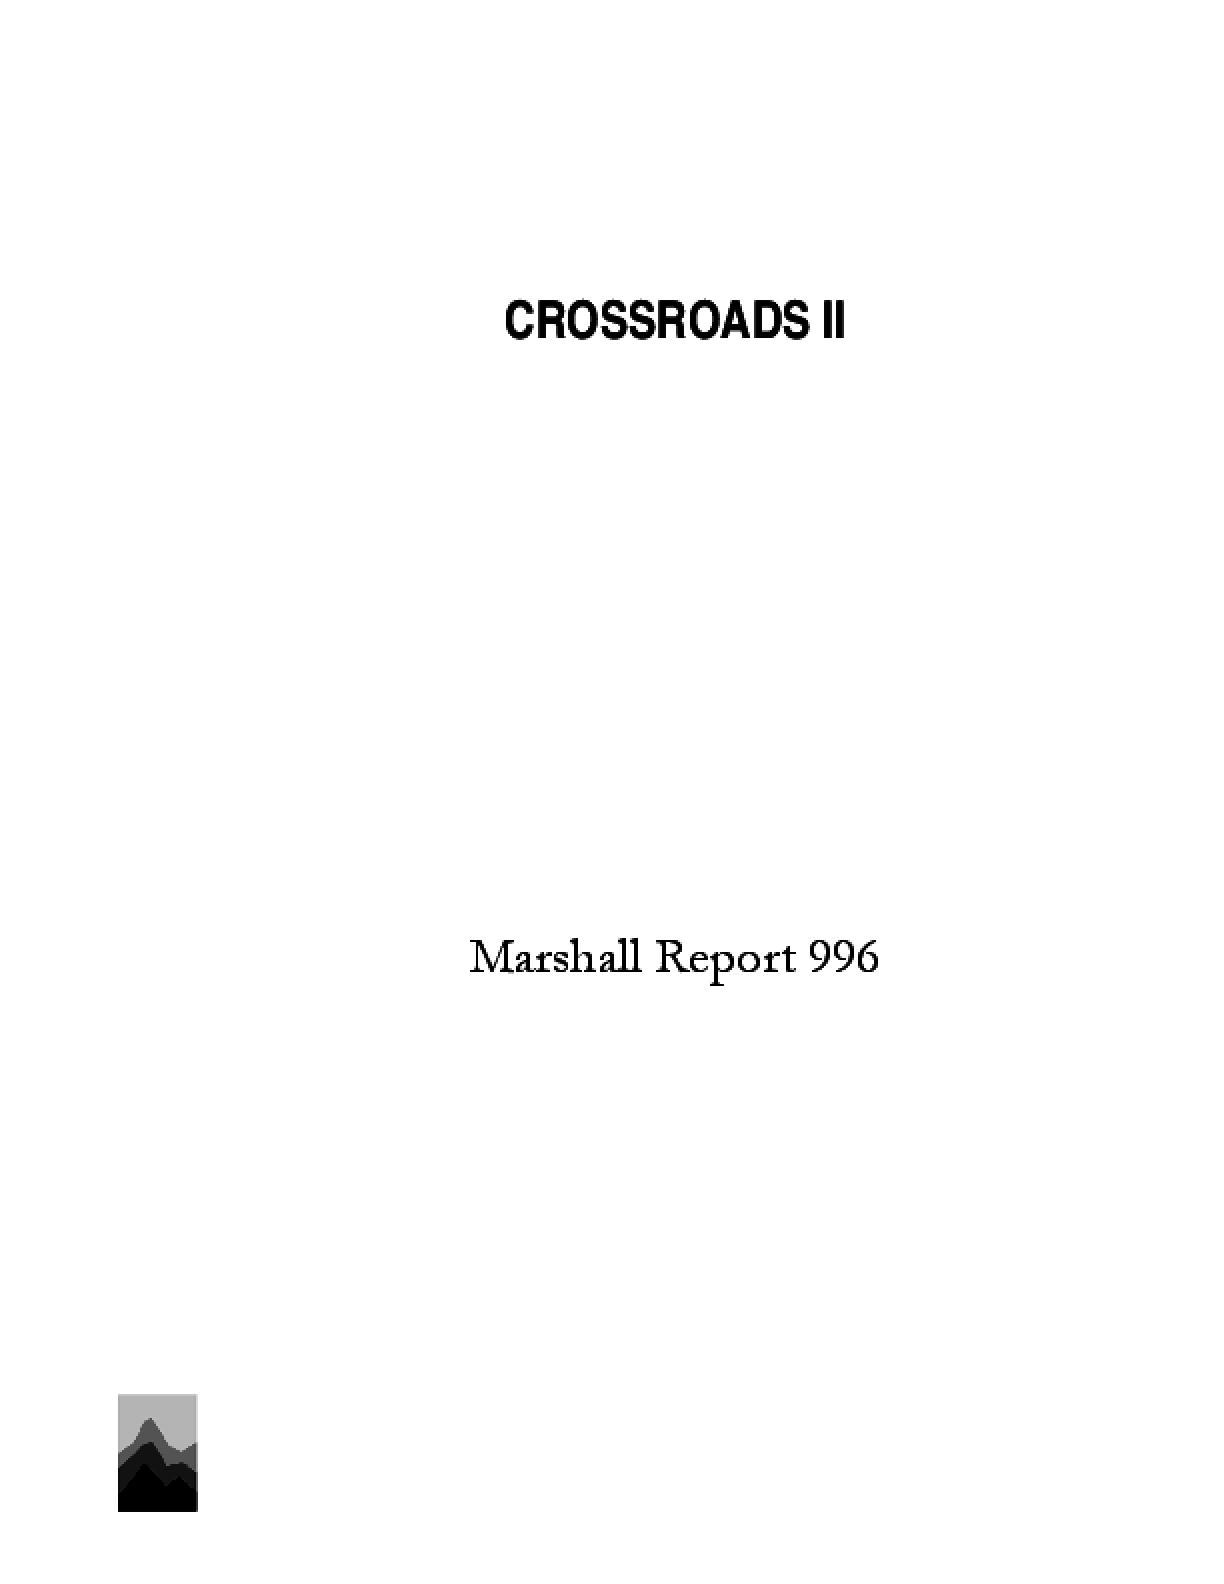 Crossroads II: Marshall Report 996